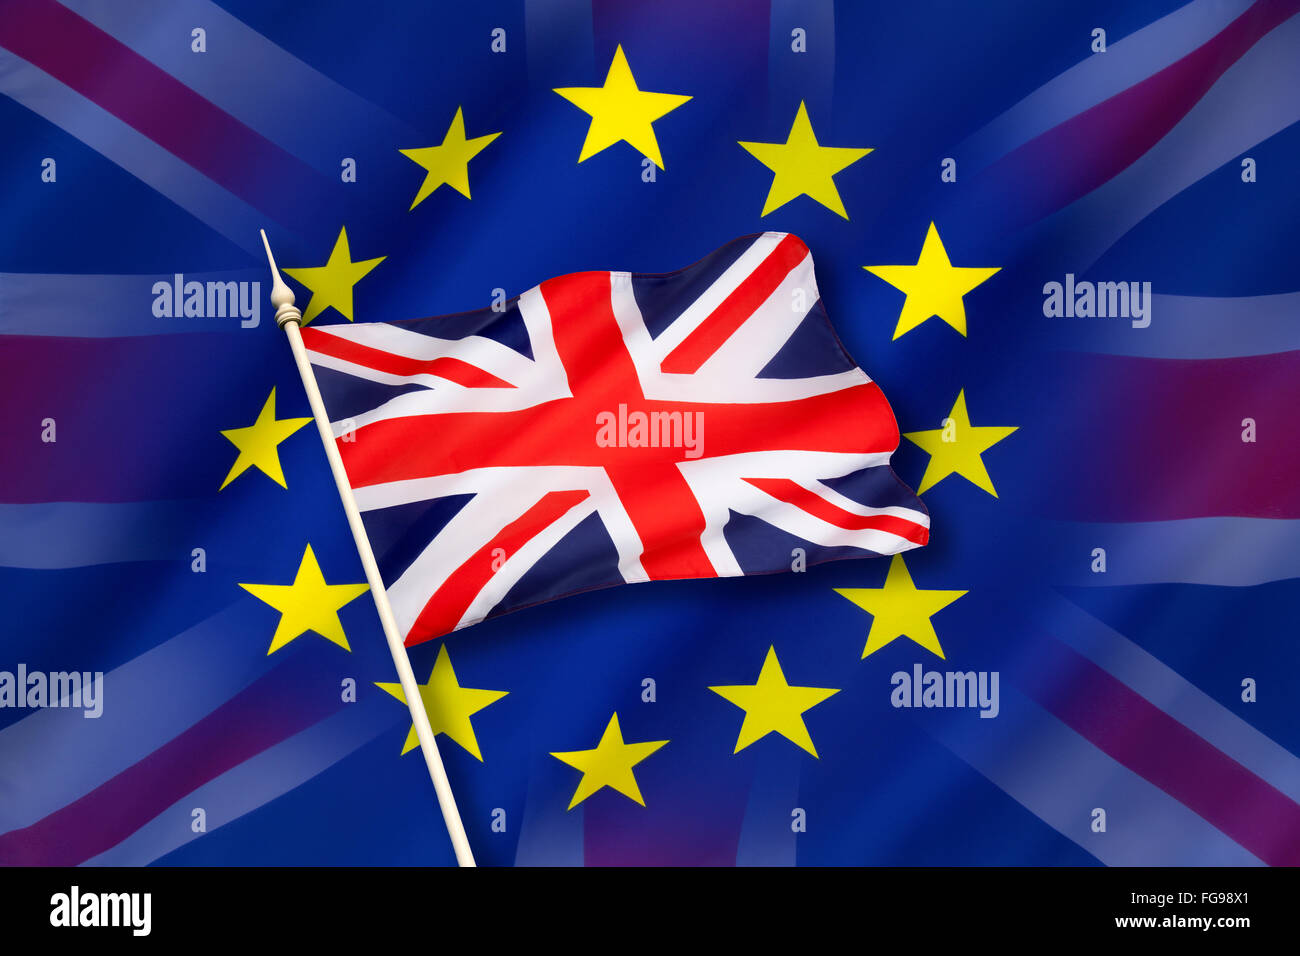 Flag of Europe and the flag of the United Kingdom - Stock Image